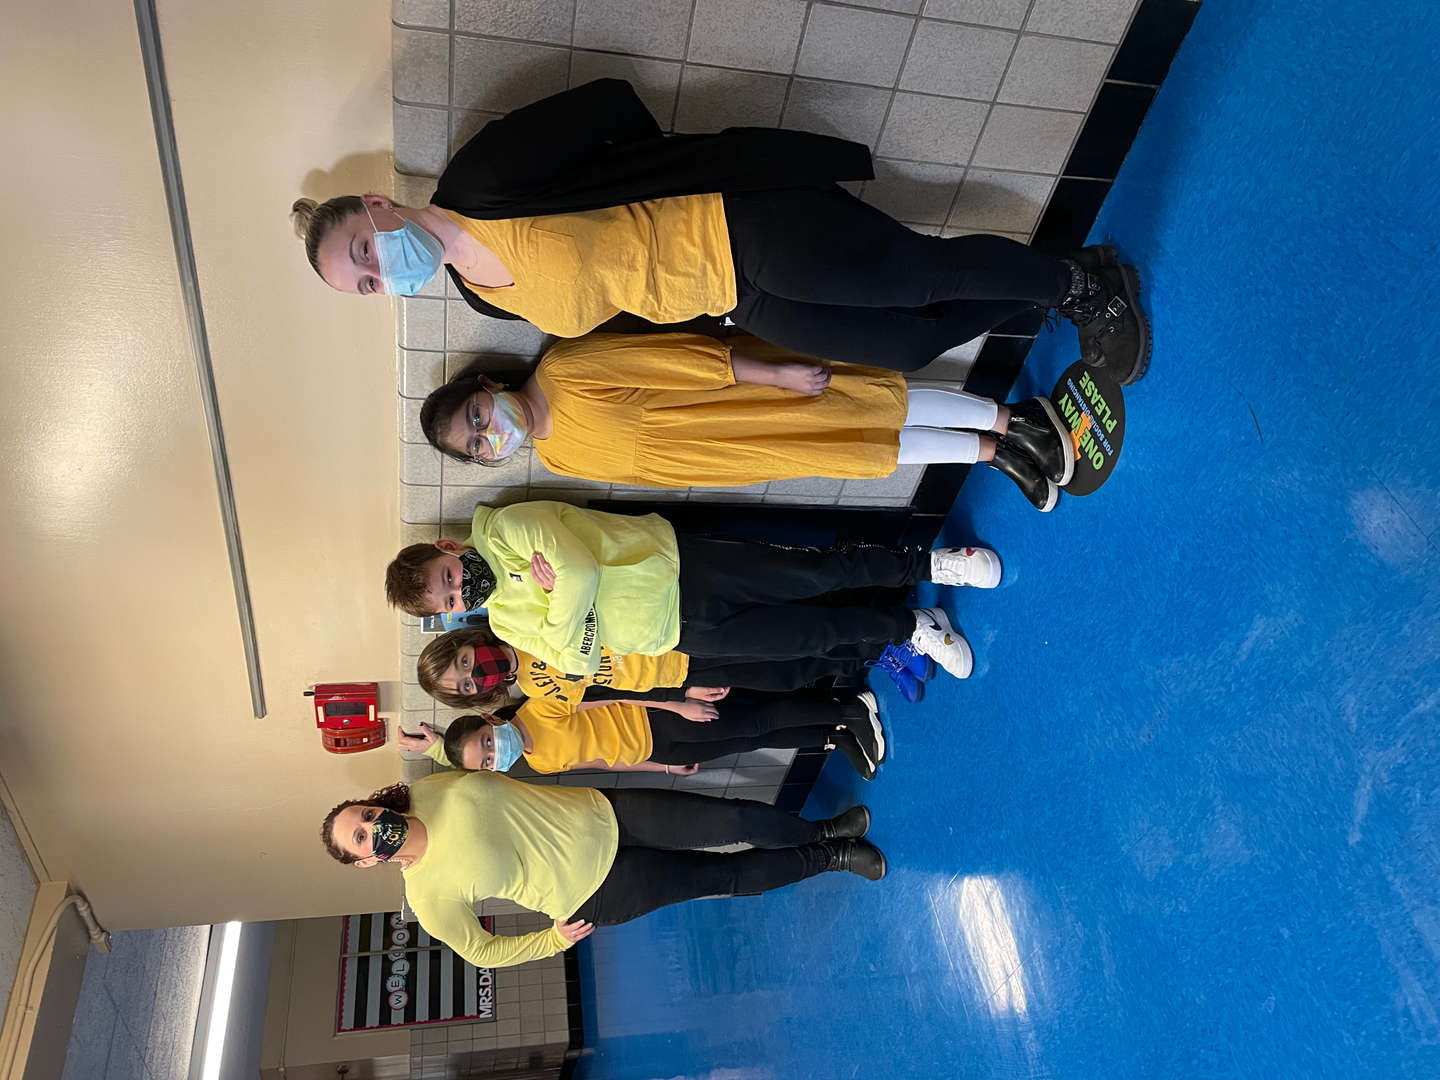 students wear yellow in school for inspiration